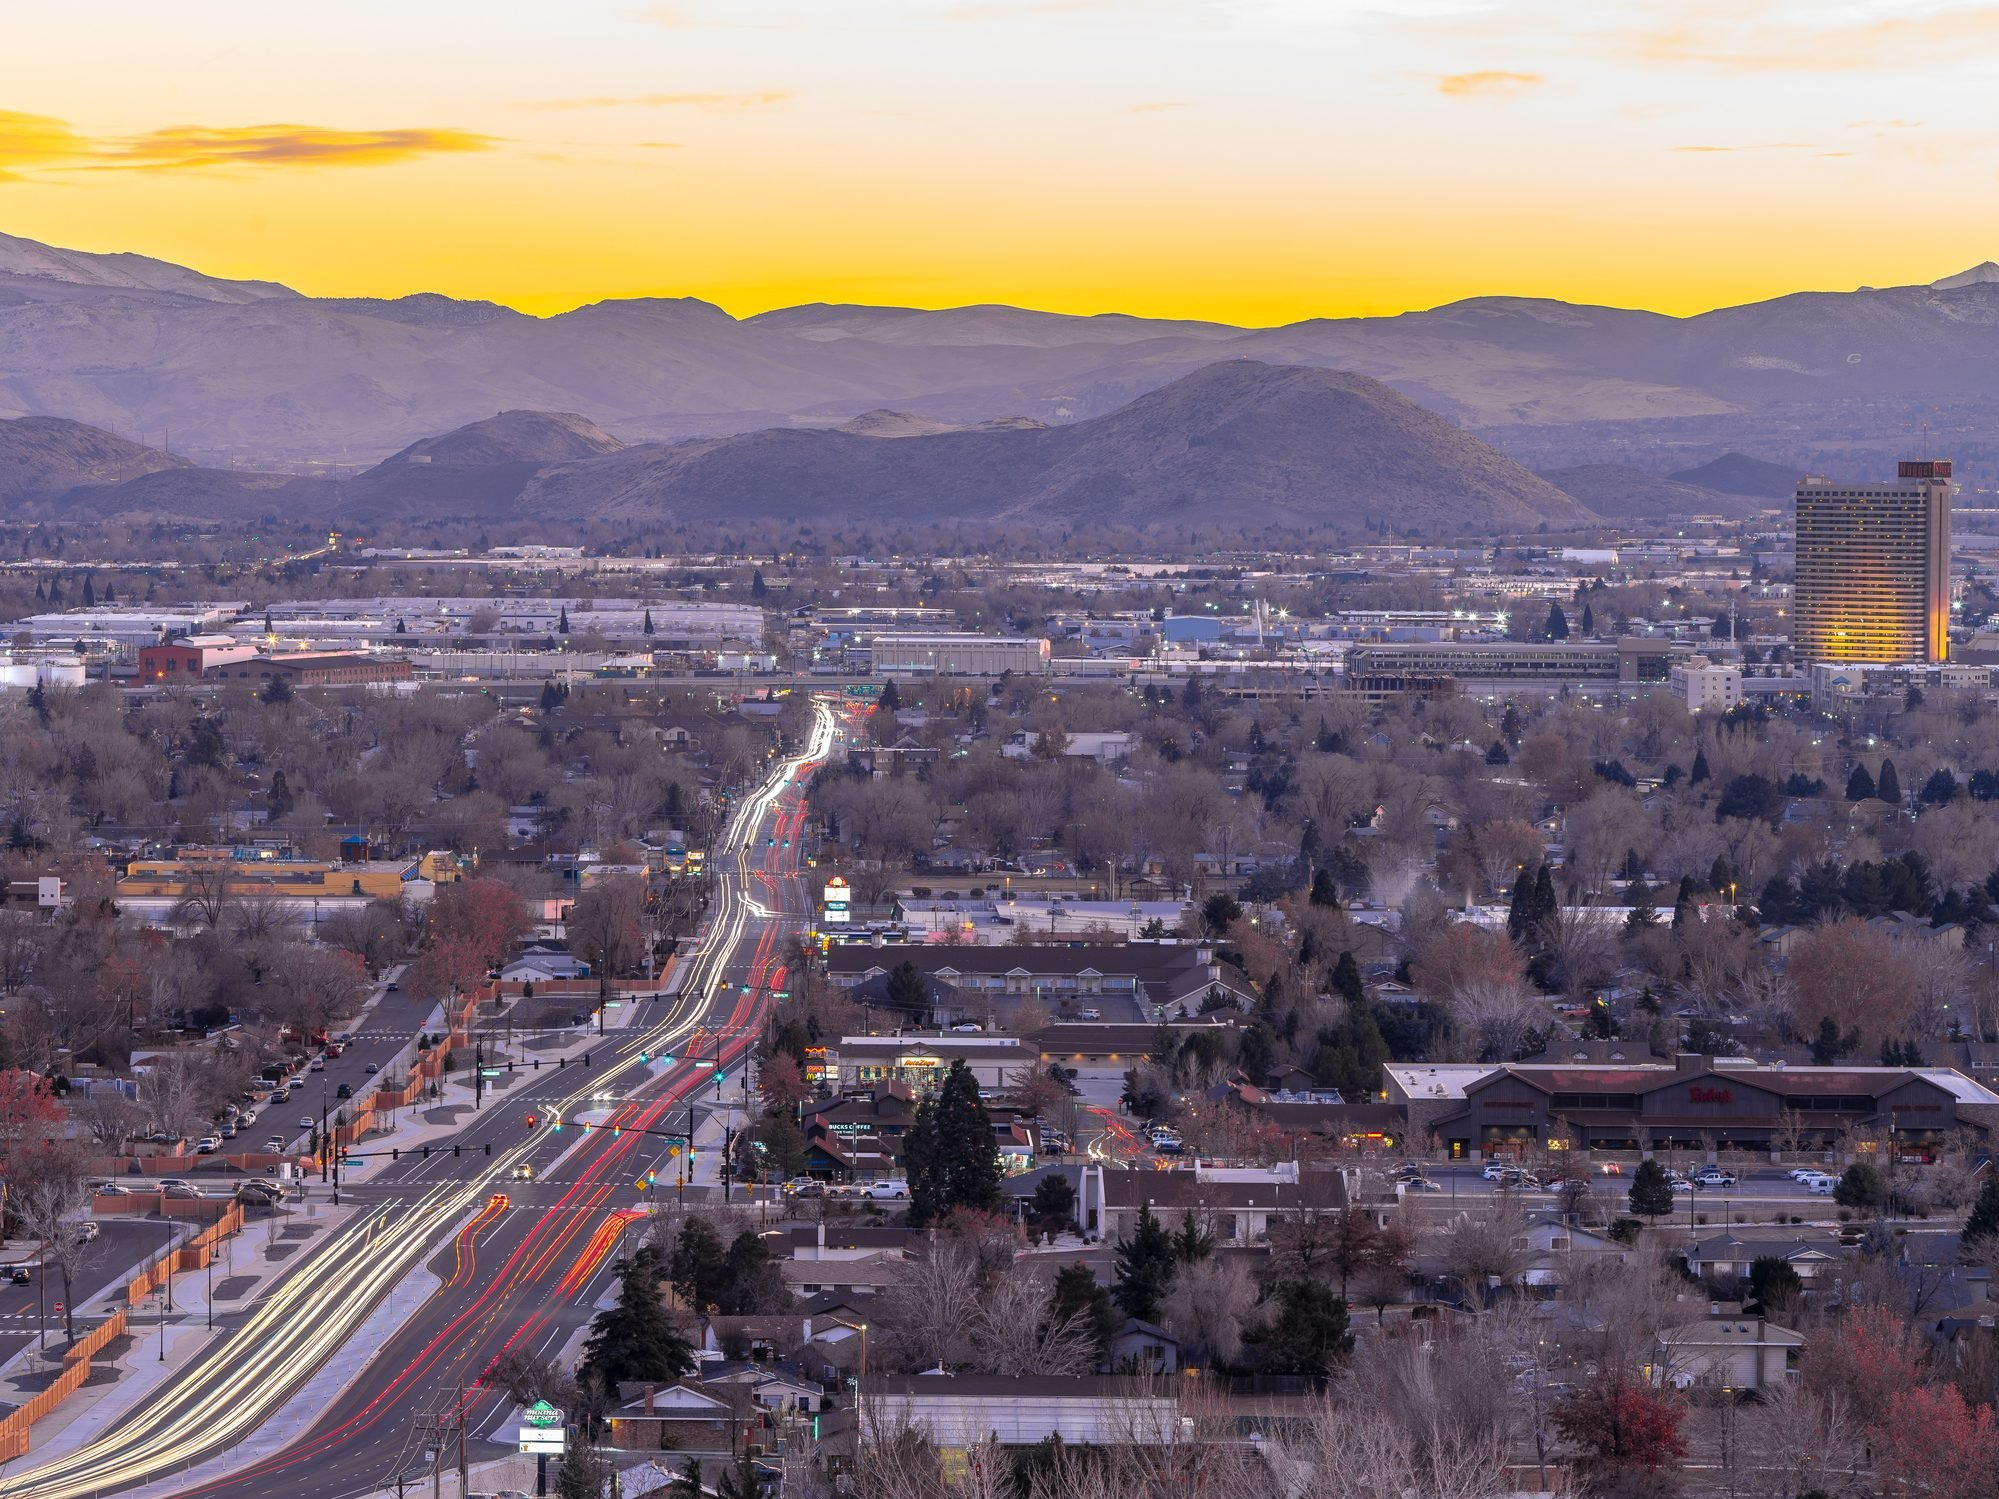 Long exposure City of Sparks, Nevada cityscape at sunset.